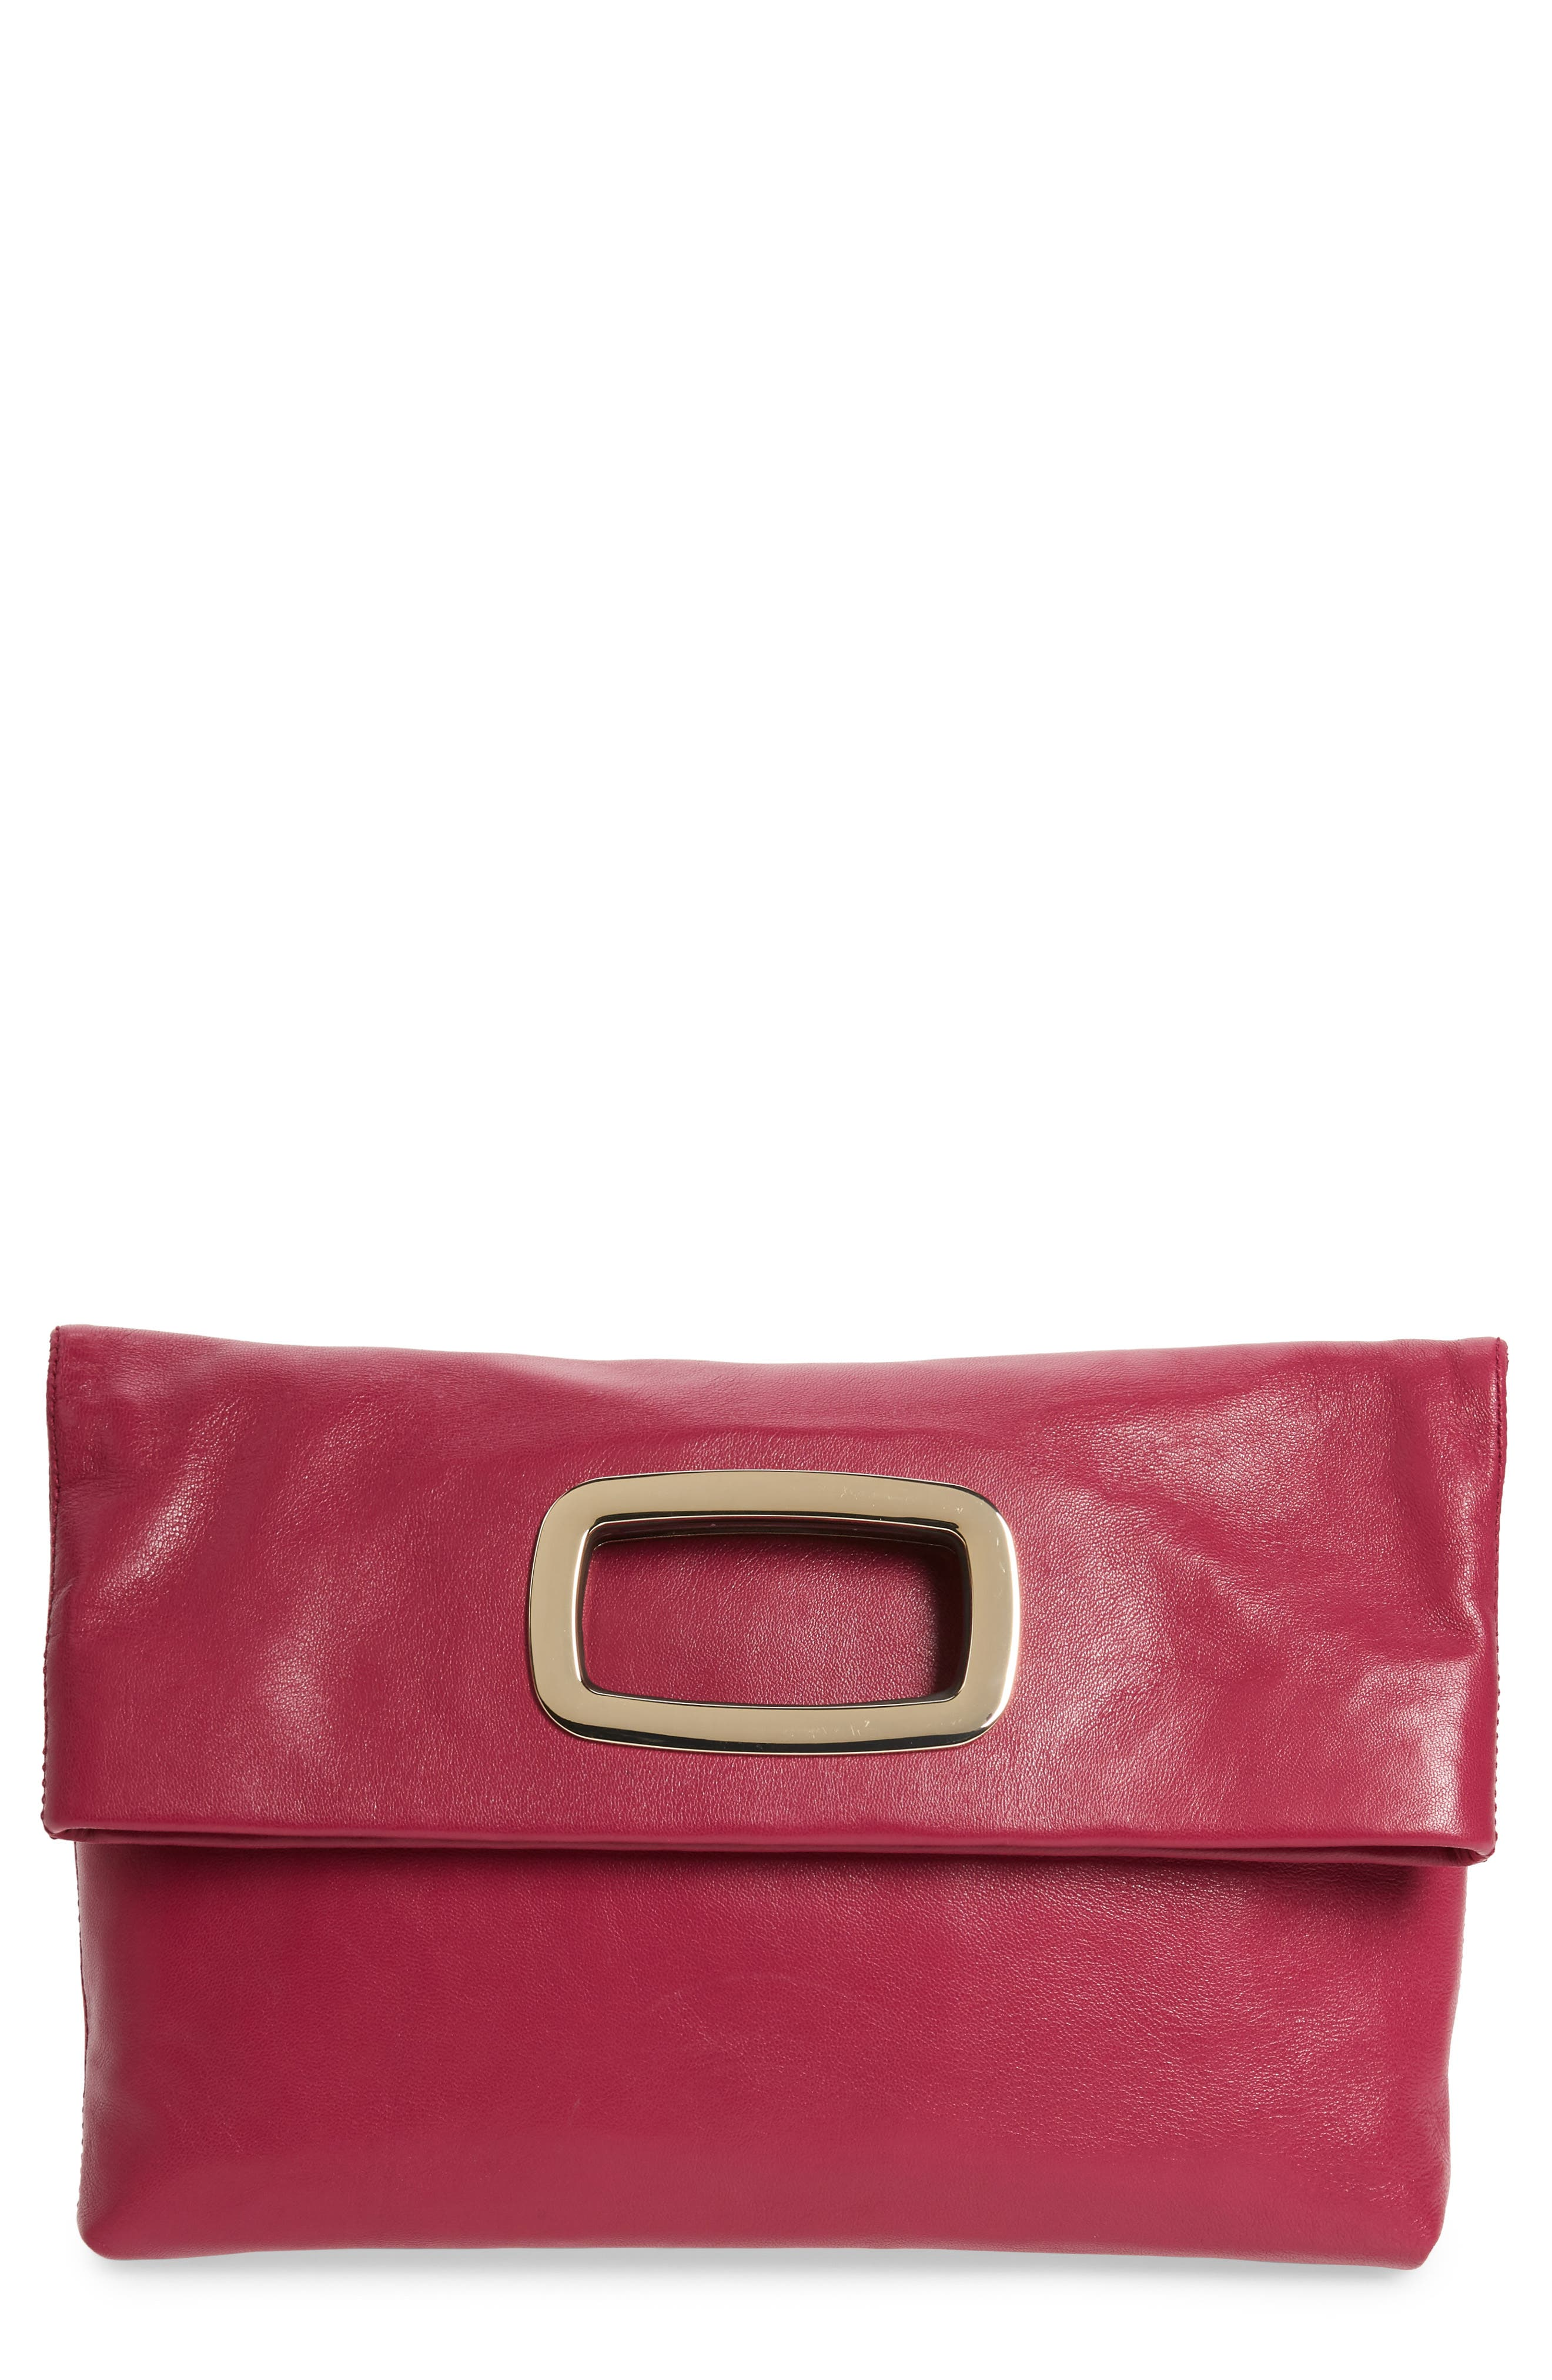 Large Marti Leather Convertible Clutch - Pink in Deep Pink